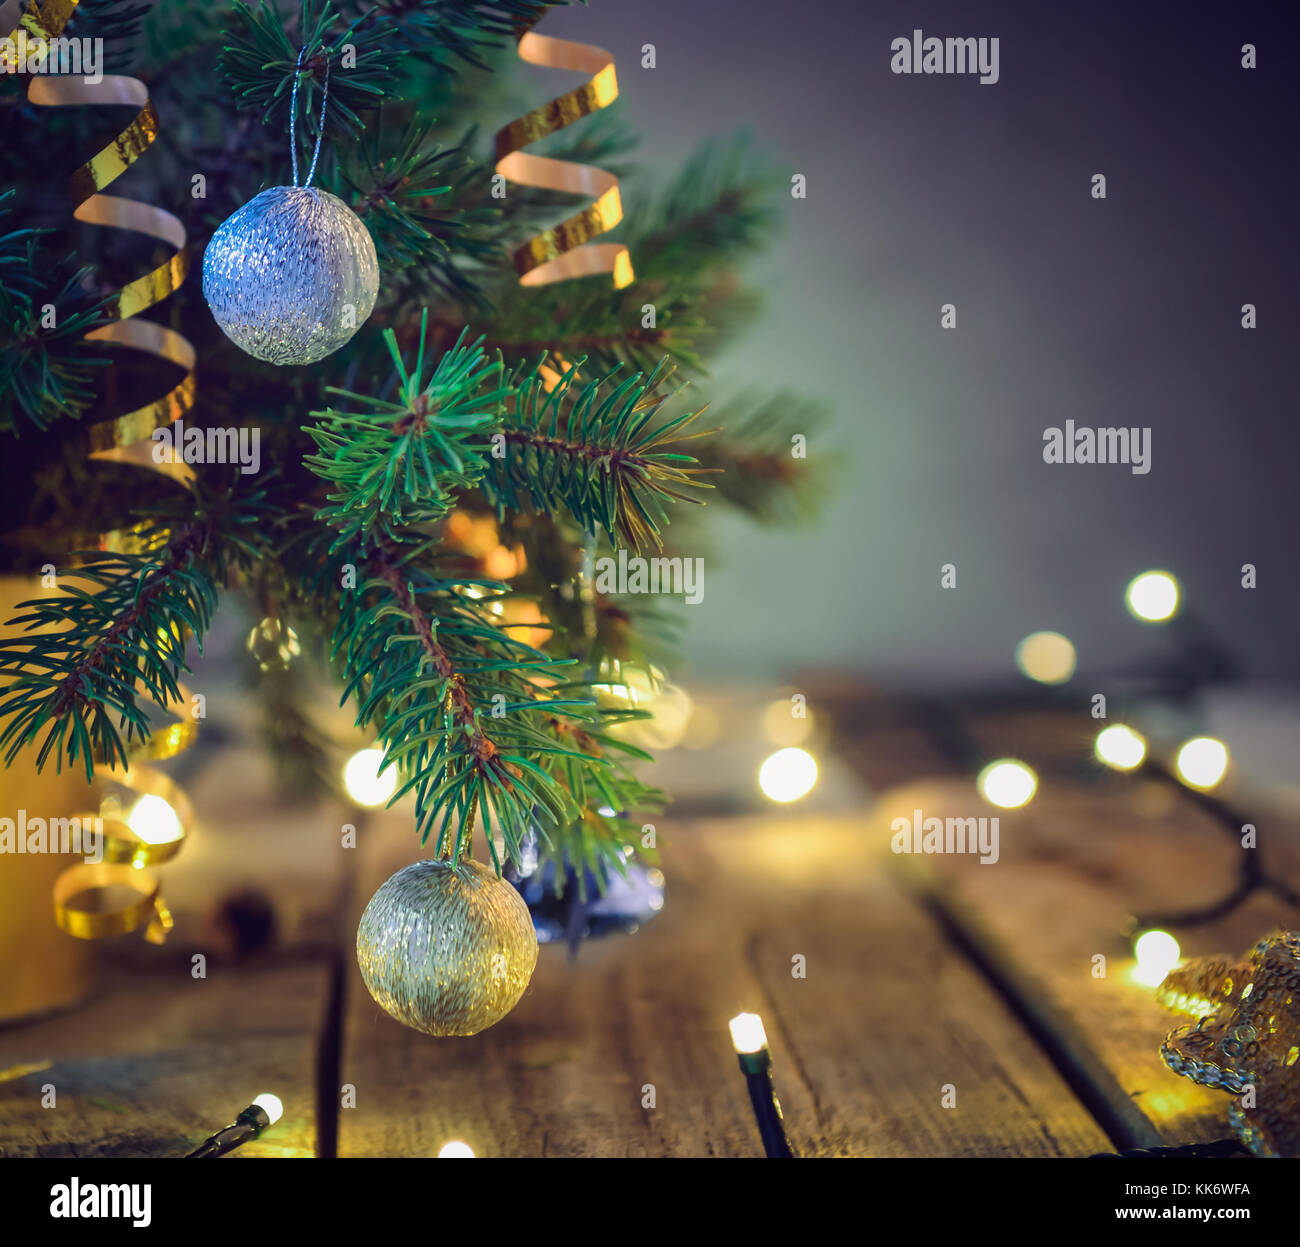 composition of christmas tree in vase with decorations and lights on the wooden vintage table retro style christmas background soft selective focus